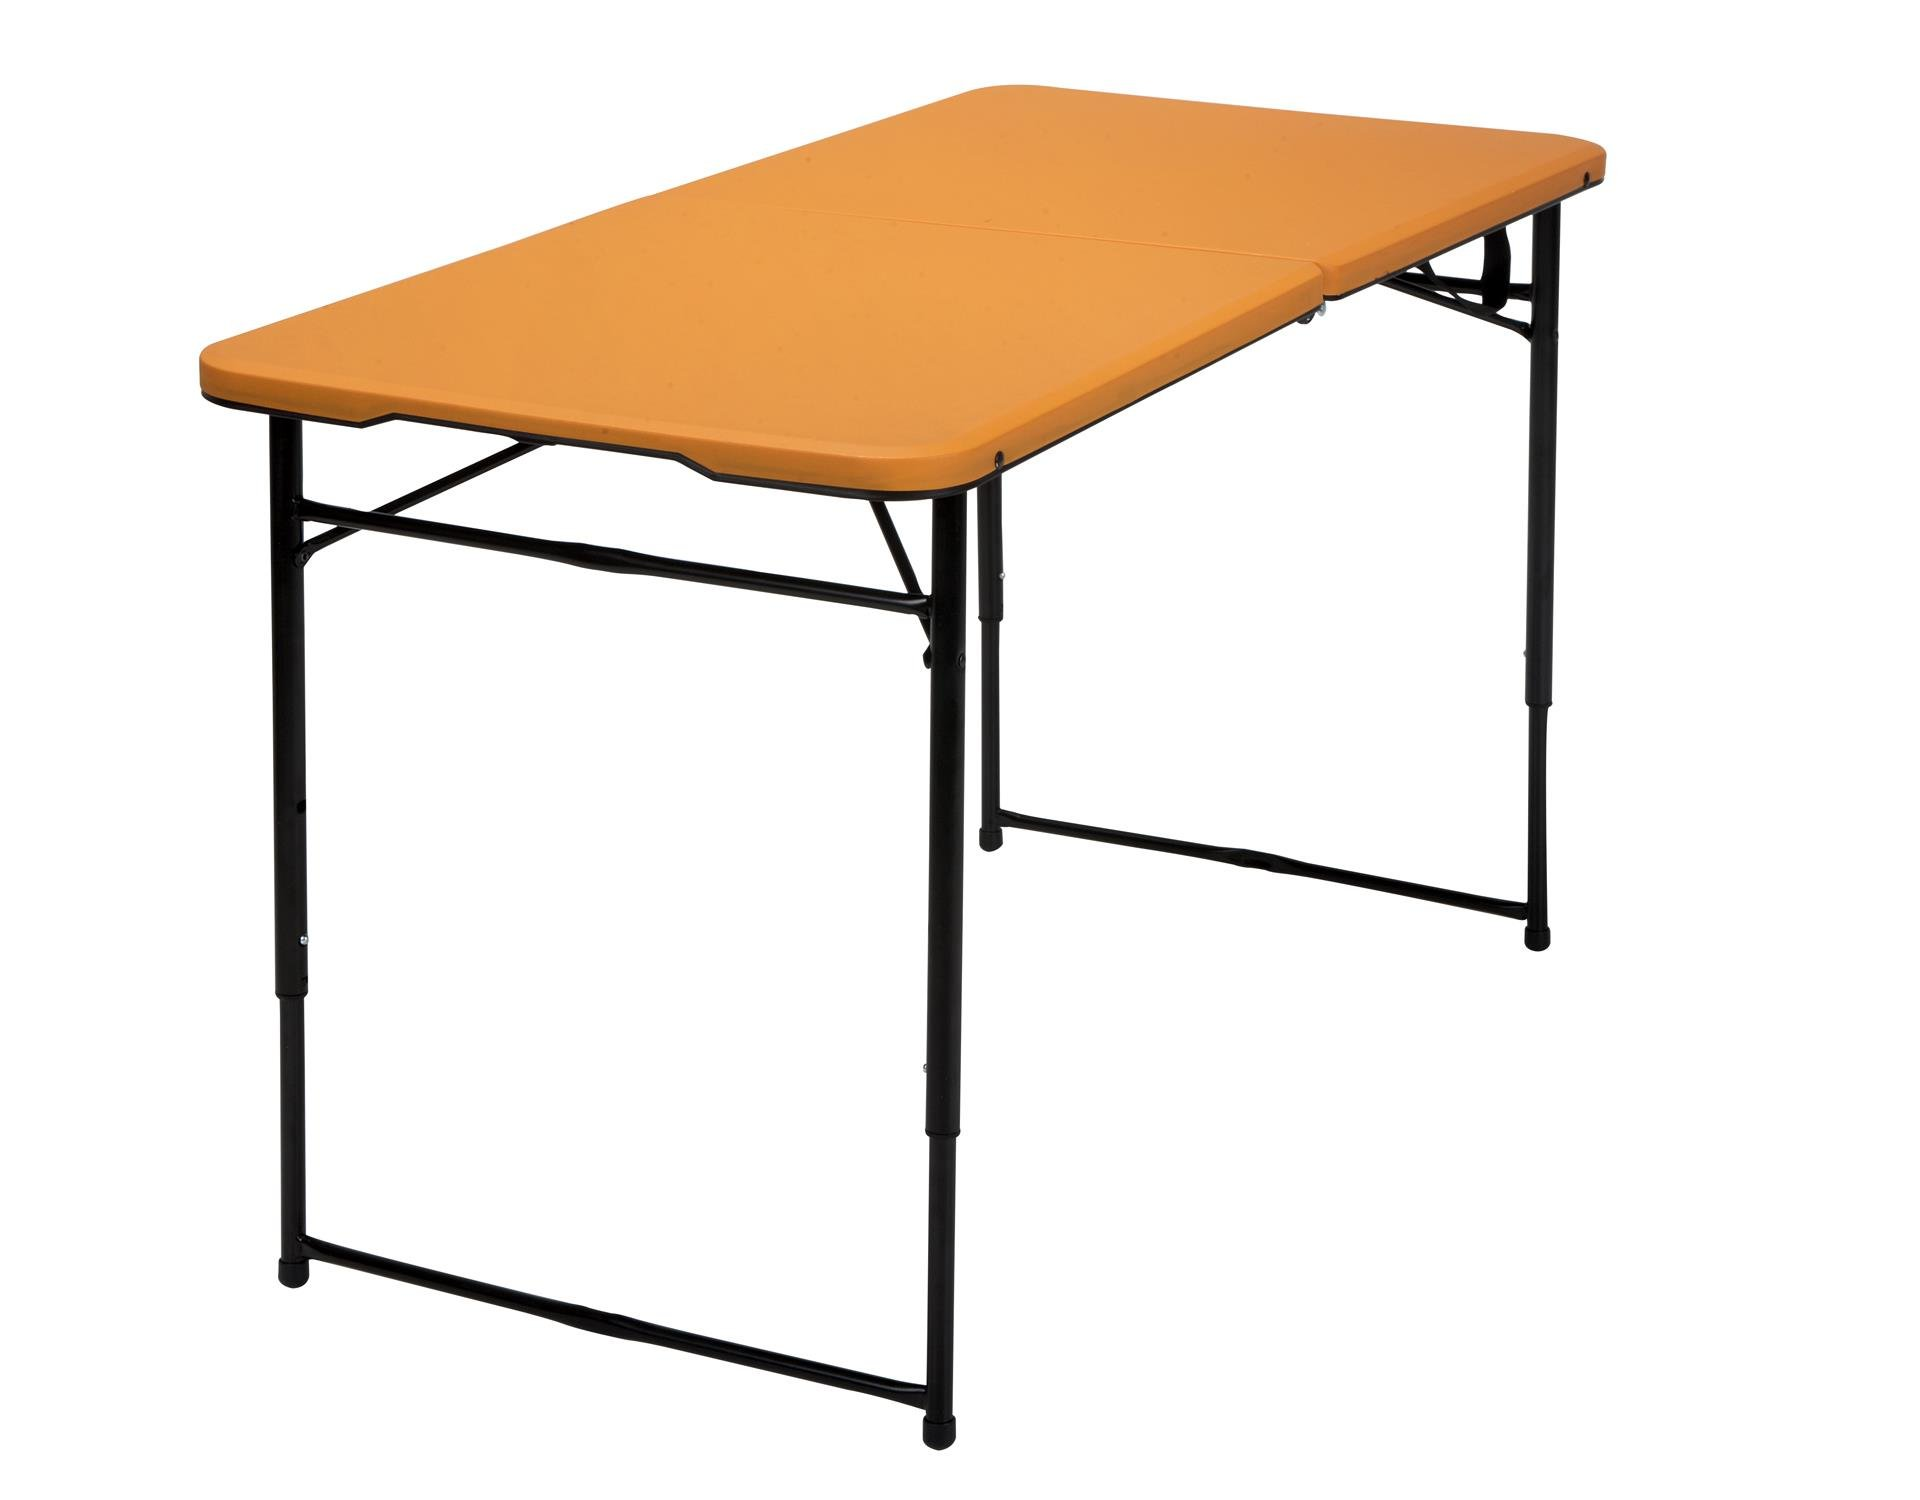 Cosco Products COSCO 4 ft. Indoor Outdoor Adjustable Height Center Fold Tailgate Table with Carrying Handle, Orange Table Top, Black Frame